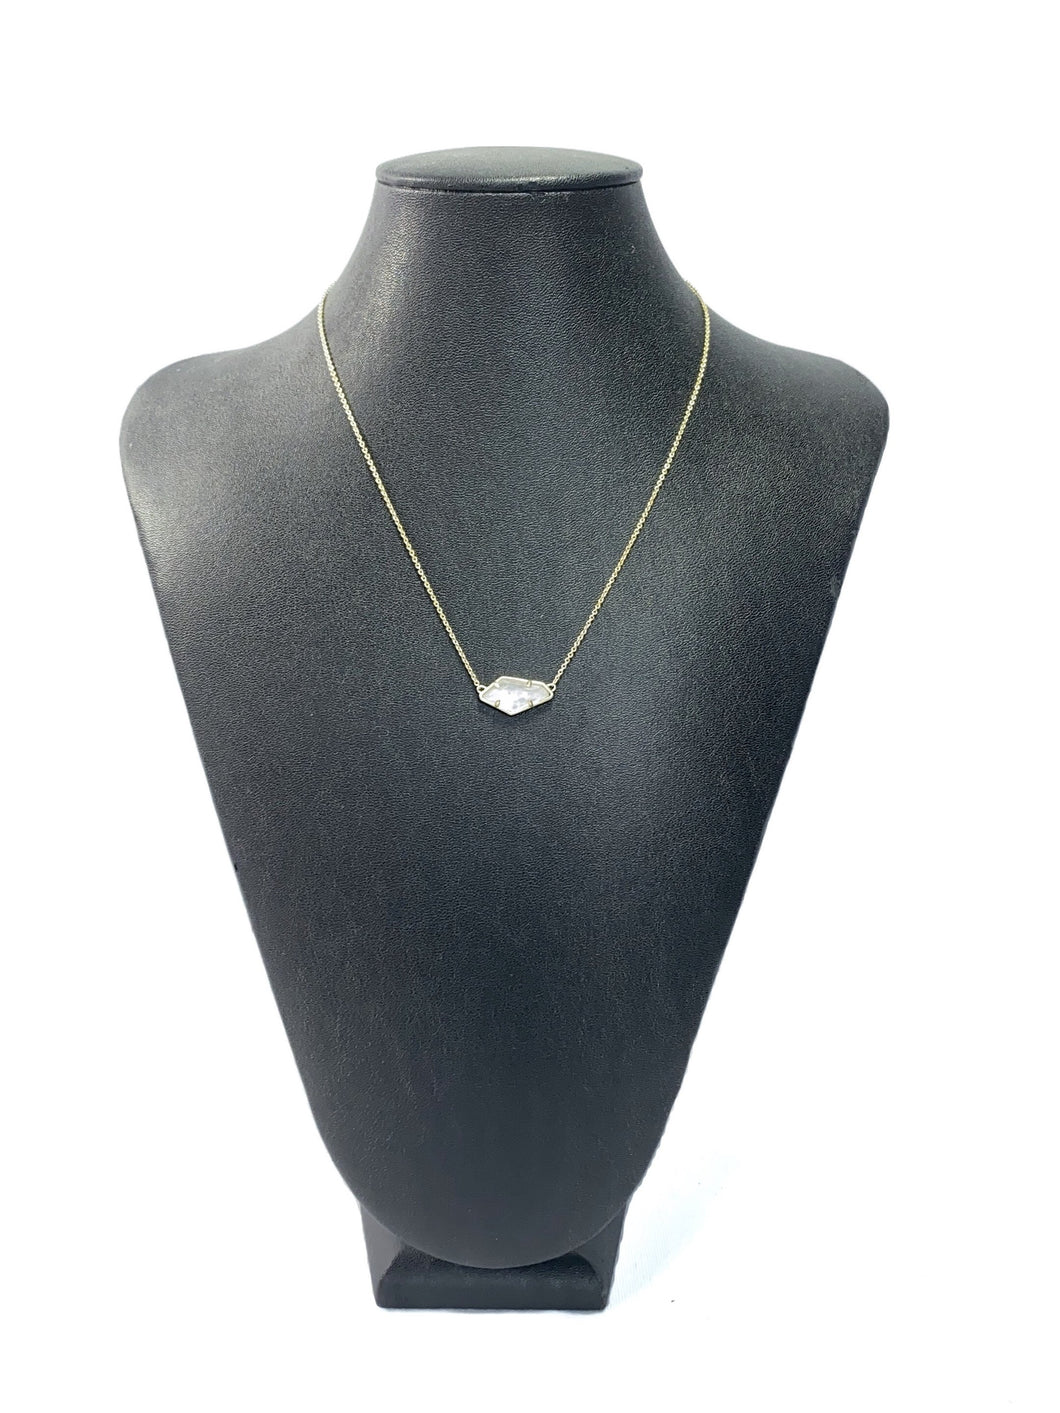 Kendra Scott small iridescent pendant necklace